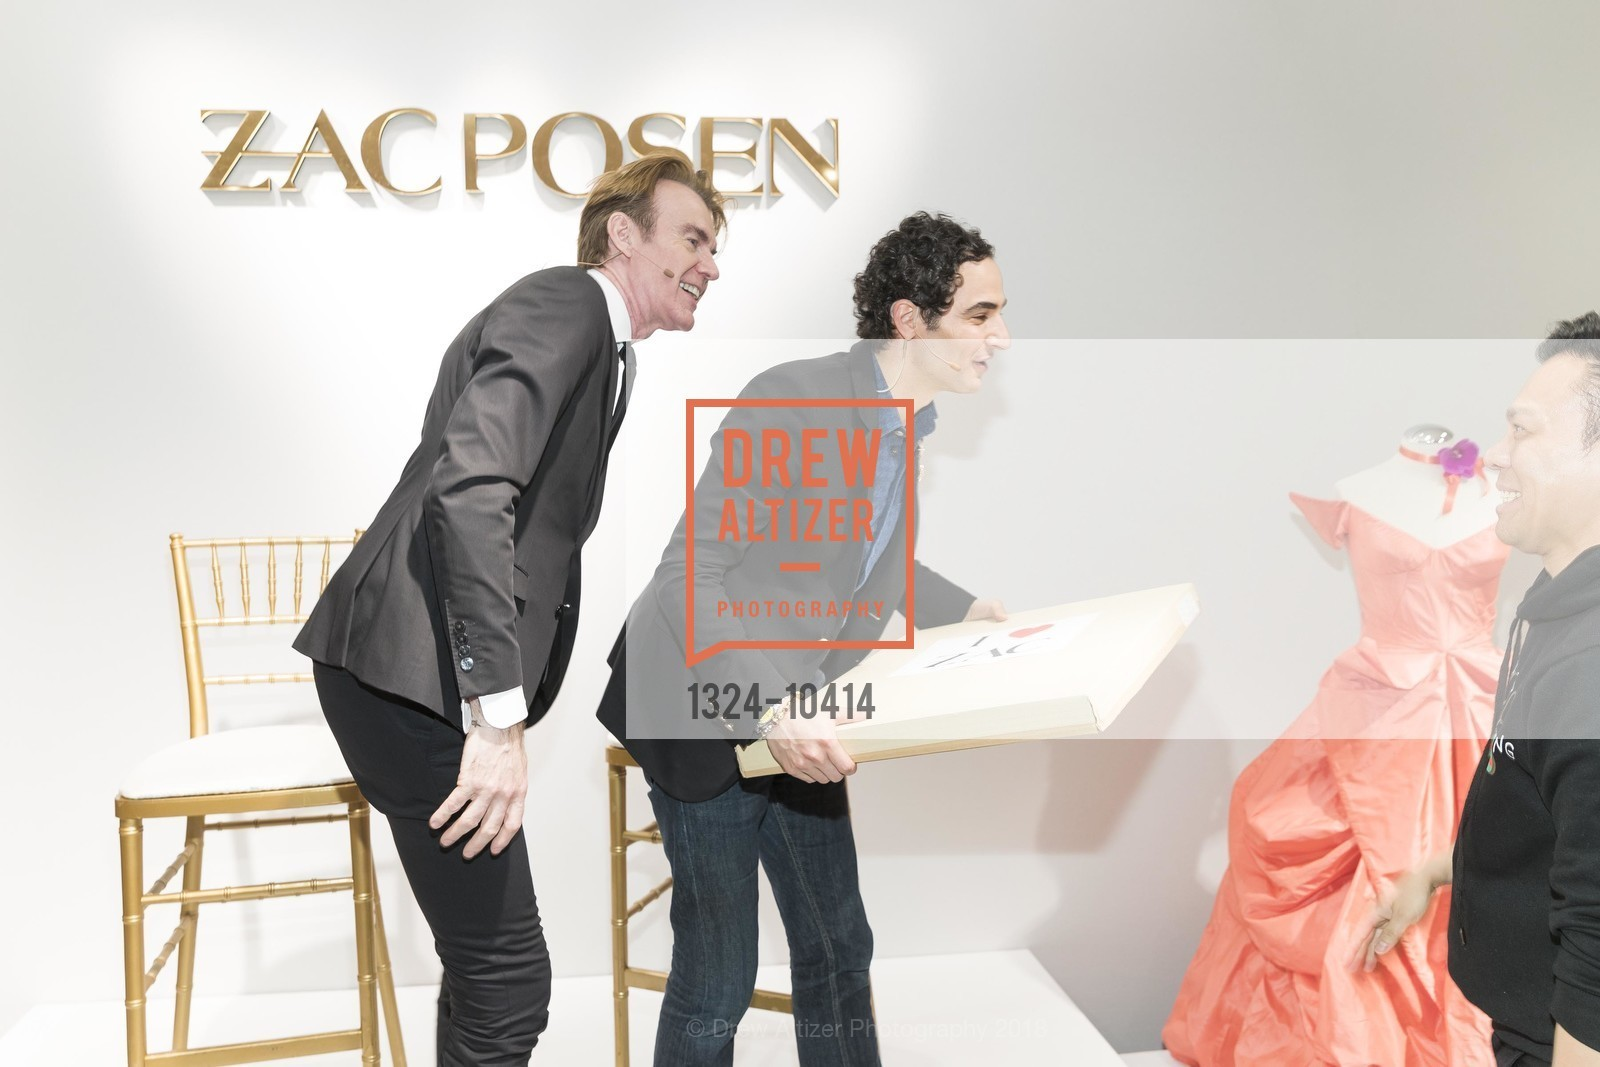 Ken Downing, Zac Posen, Photo #1324-10414